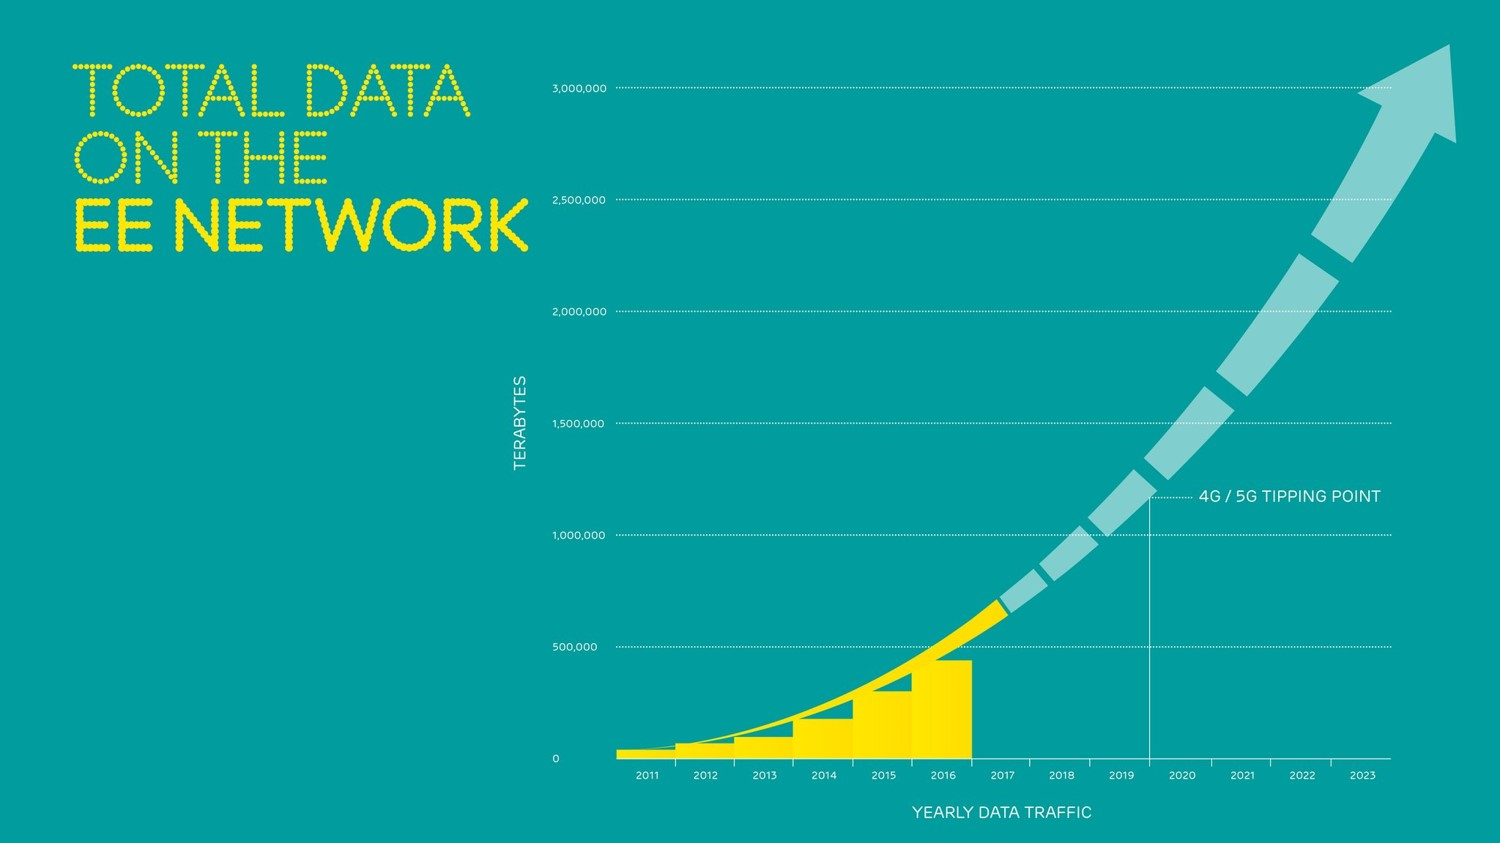 4G data traffic steadily increasing on EE